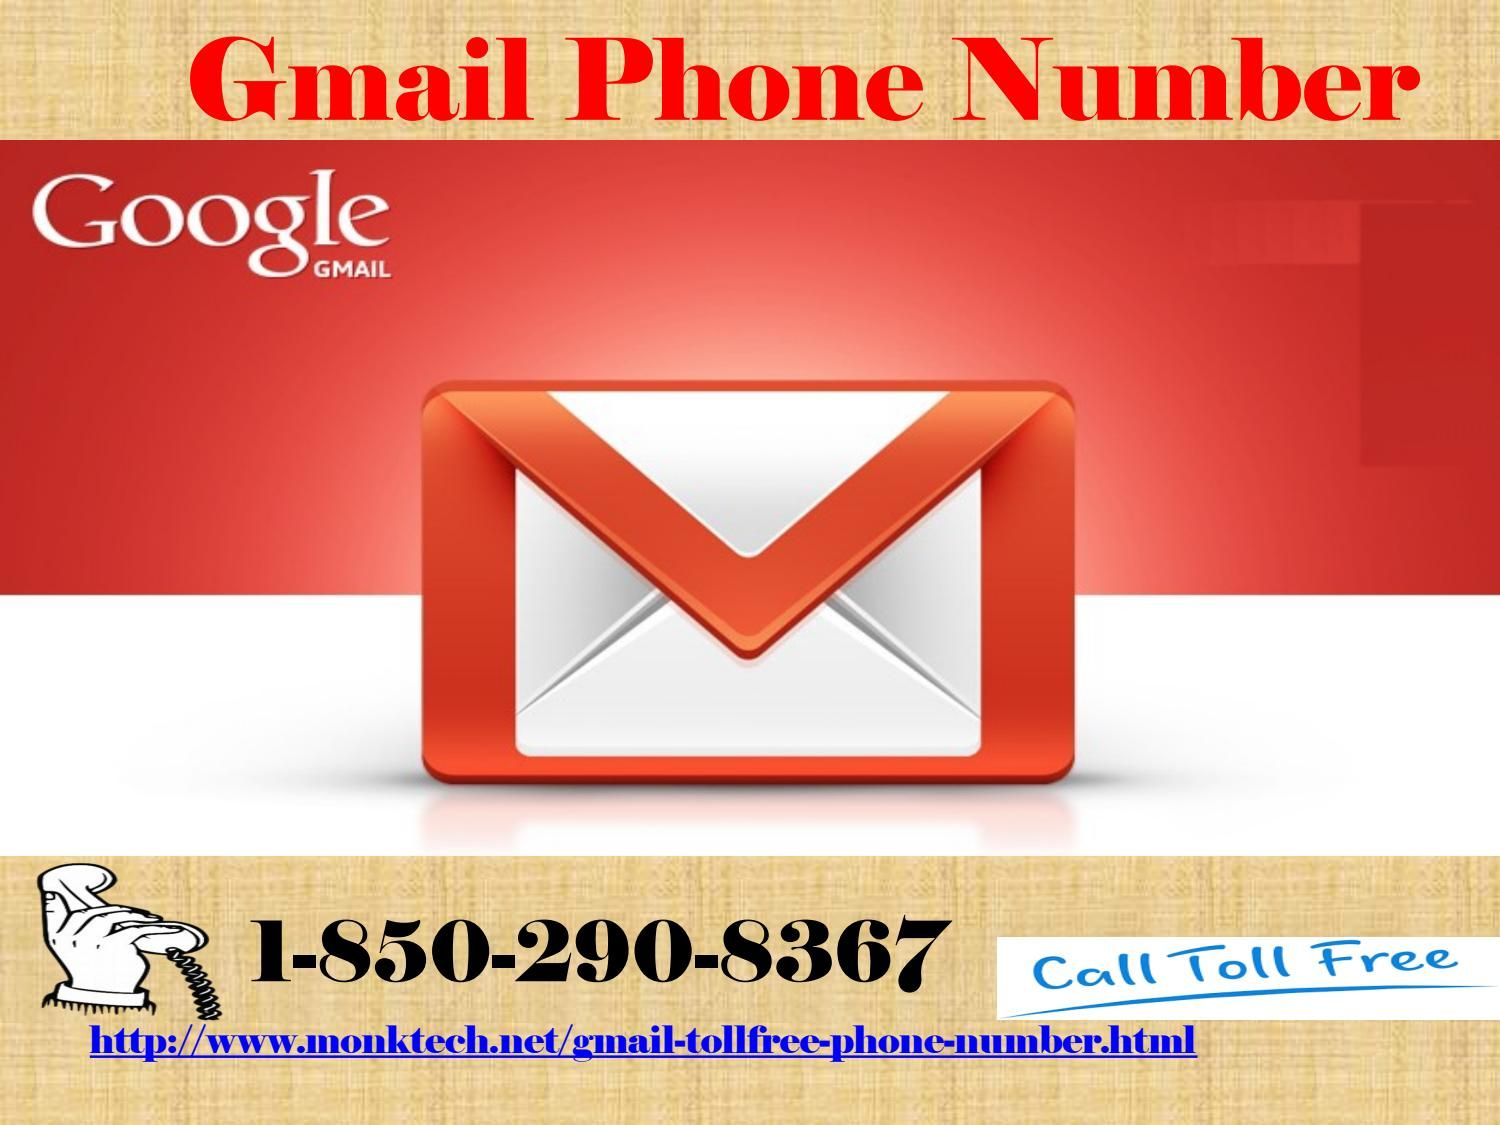 Should I Make A Ring At Gmail Phone Number Frequently 1